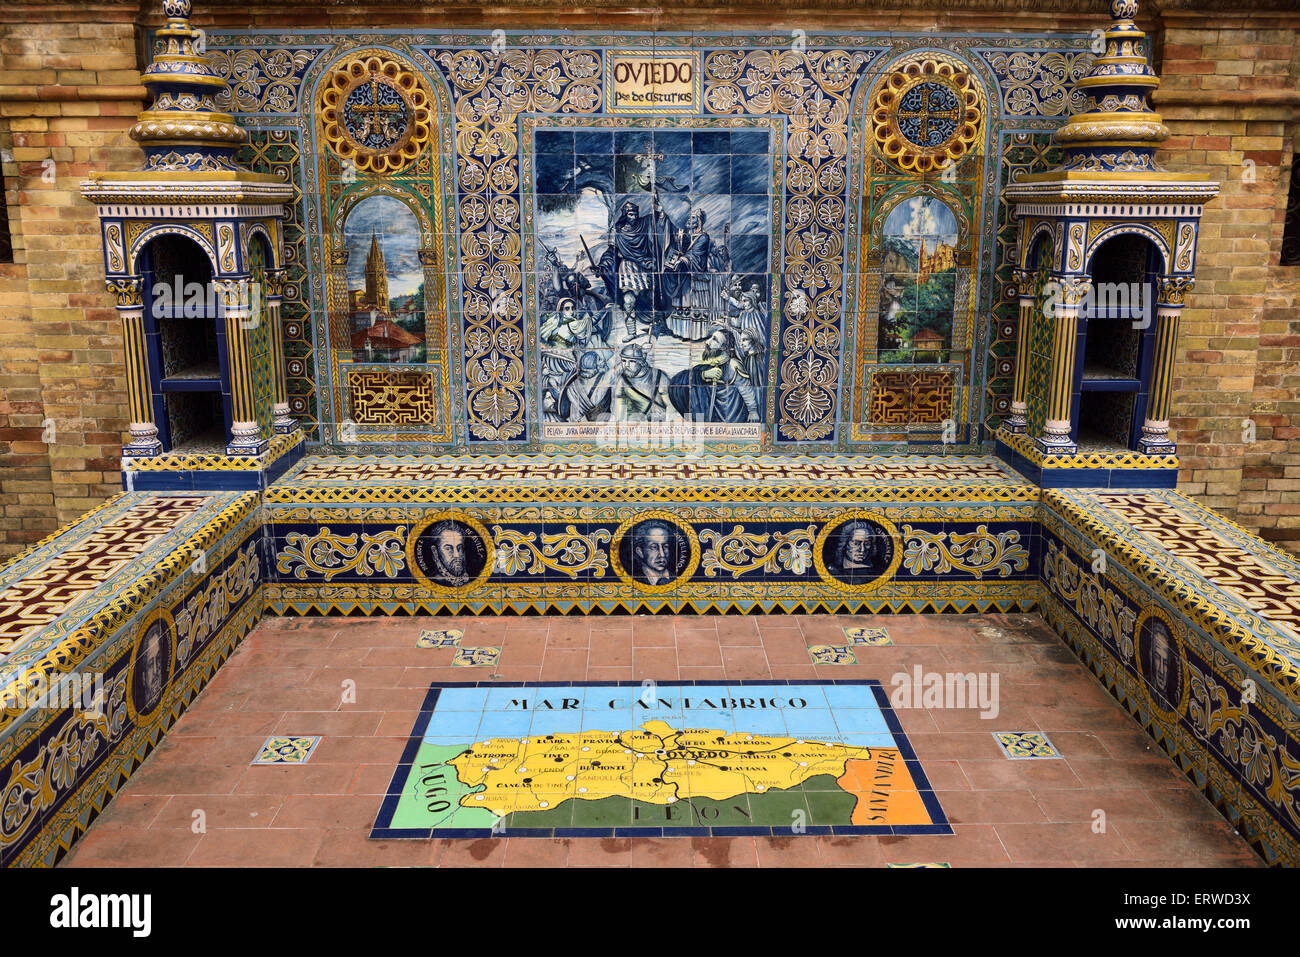 Oviedo in Asturias Province of Spain Alcove at Plaza de Espana Seville with painted ceramic tiles - Stock Image